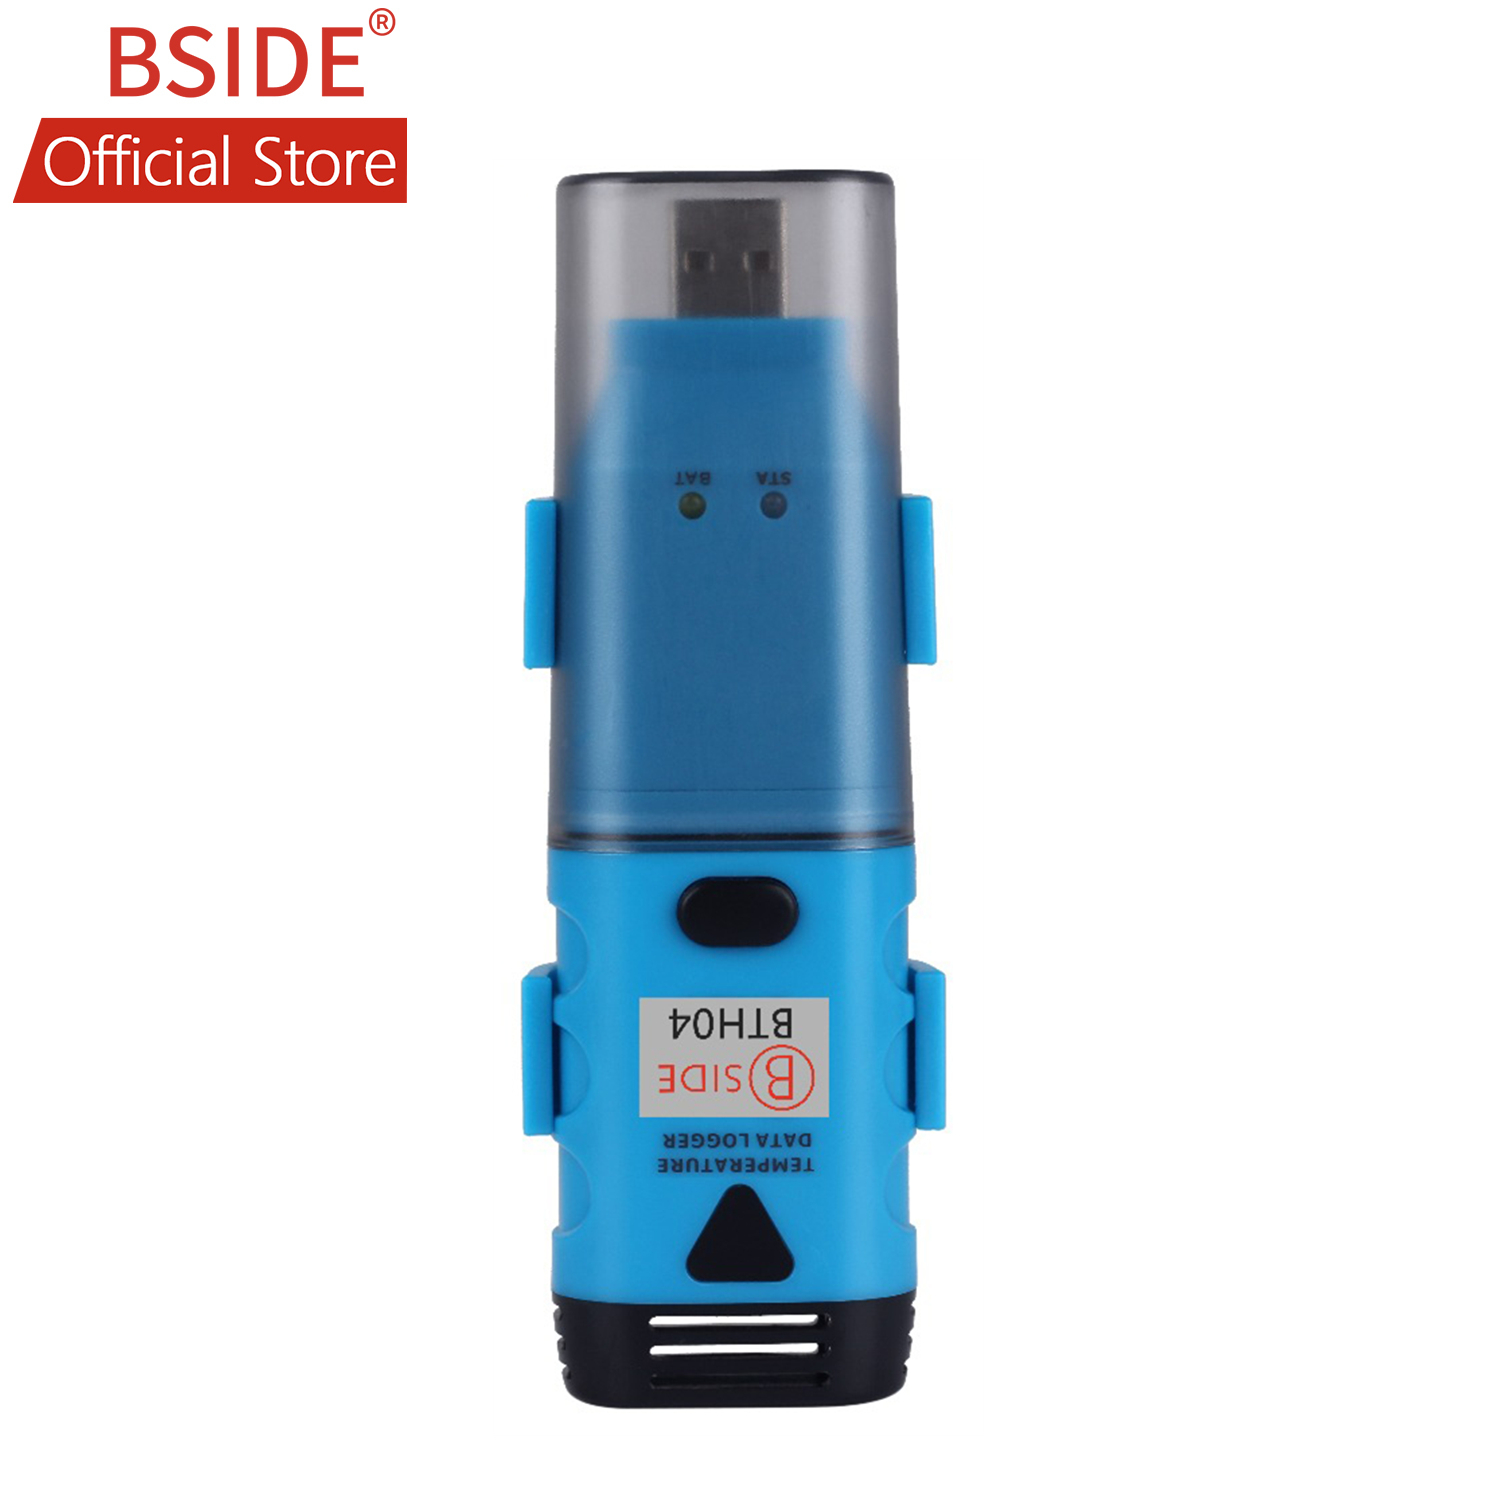 BSIDE BTH04 USB Single Channel Temperature Data Logger Temp Waterproof Recorder with 3 6V Lithium Battery